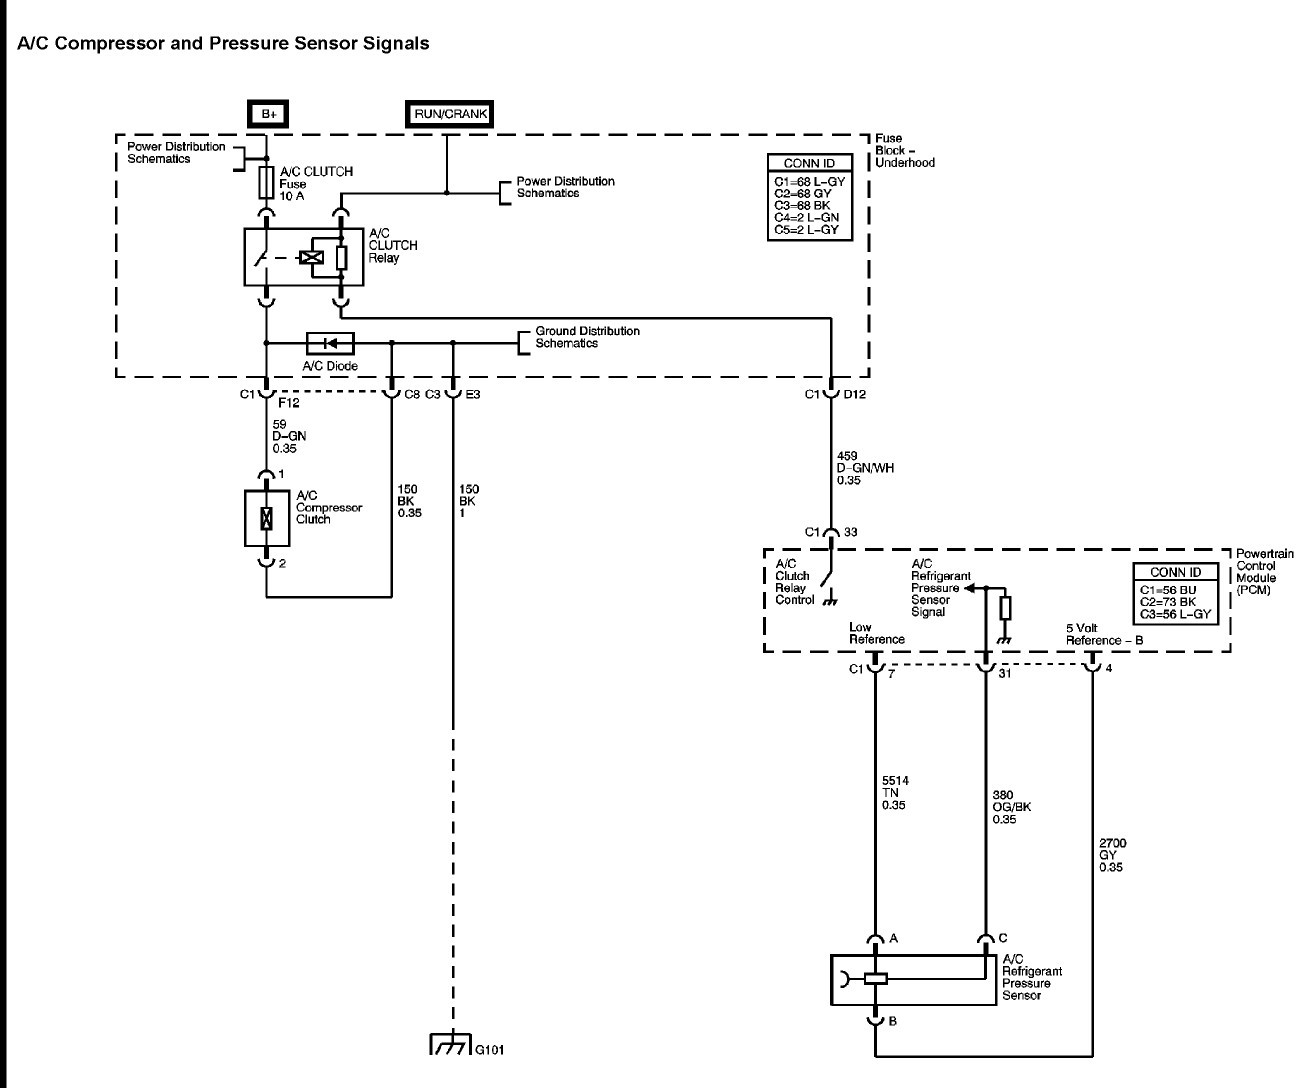 Chilton Wiring Diagrams Trusted 2007 Gti Air Conditioning Diagram Auto Conditioner Image Series And Parallel Circuits